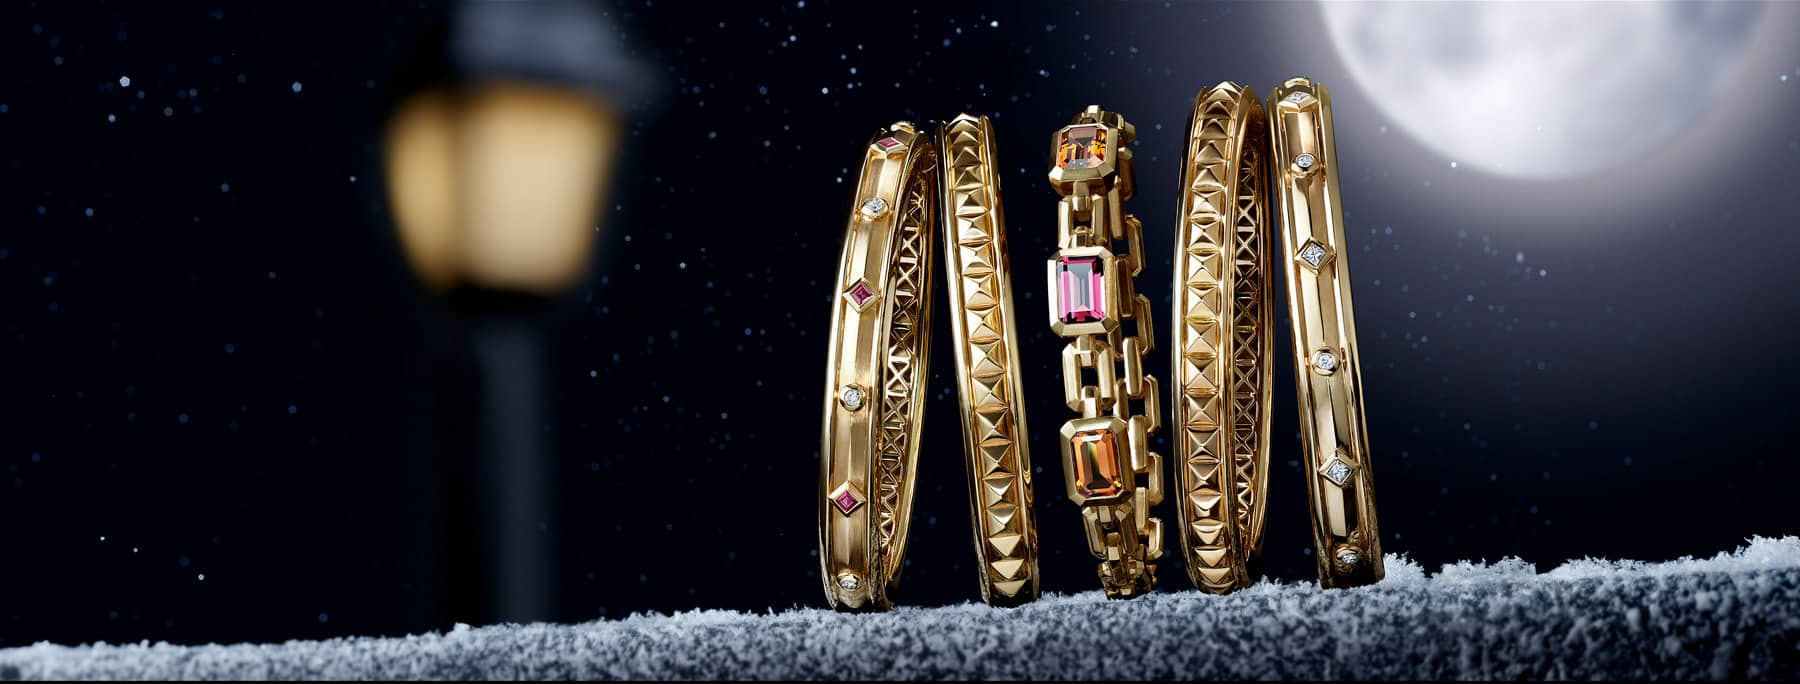 Five David Yurman bracelets from the Renaissance and Novella collections are leaning against each other at night on a stone ledge lightly dusted with snowflakes. The women's jewelry is crafted from 18K yellow gold with or without white diamonds, rubies, citrine or pink tourmaline. In the dark background is the golden glow of a nearby street light.